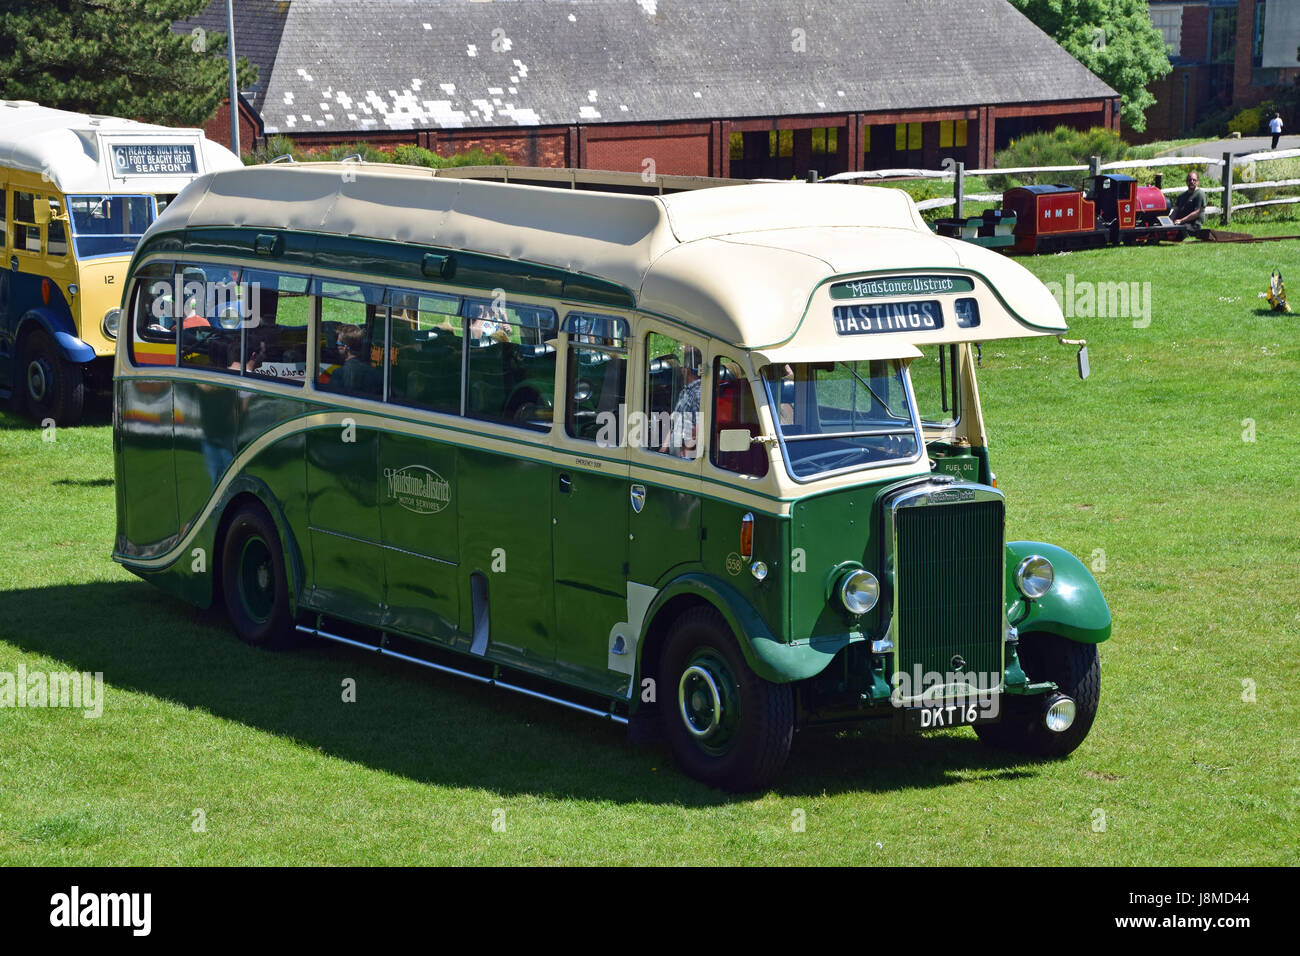 DKT16, CO558, Maidstone & District Leyland Tiger TS7 Harrington at Hastings Trolleybus Restoration Group 25th - Stock Image